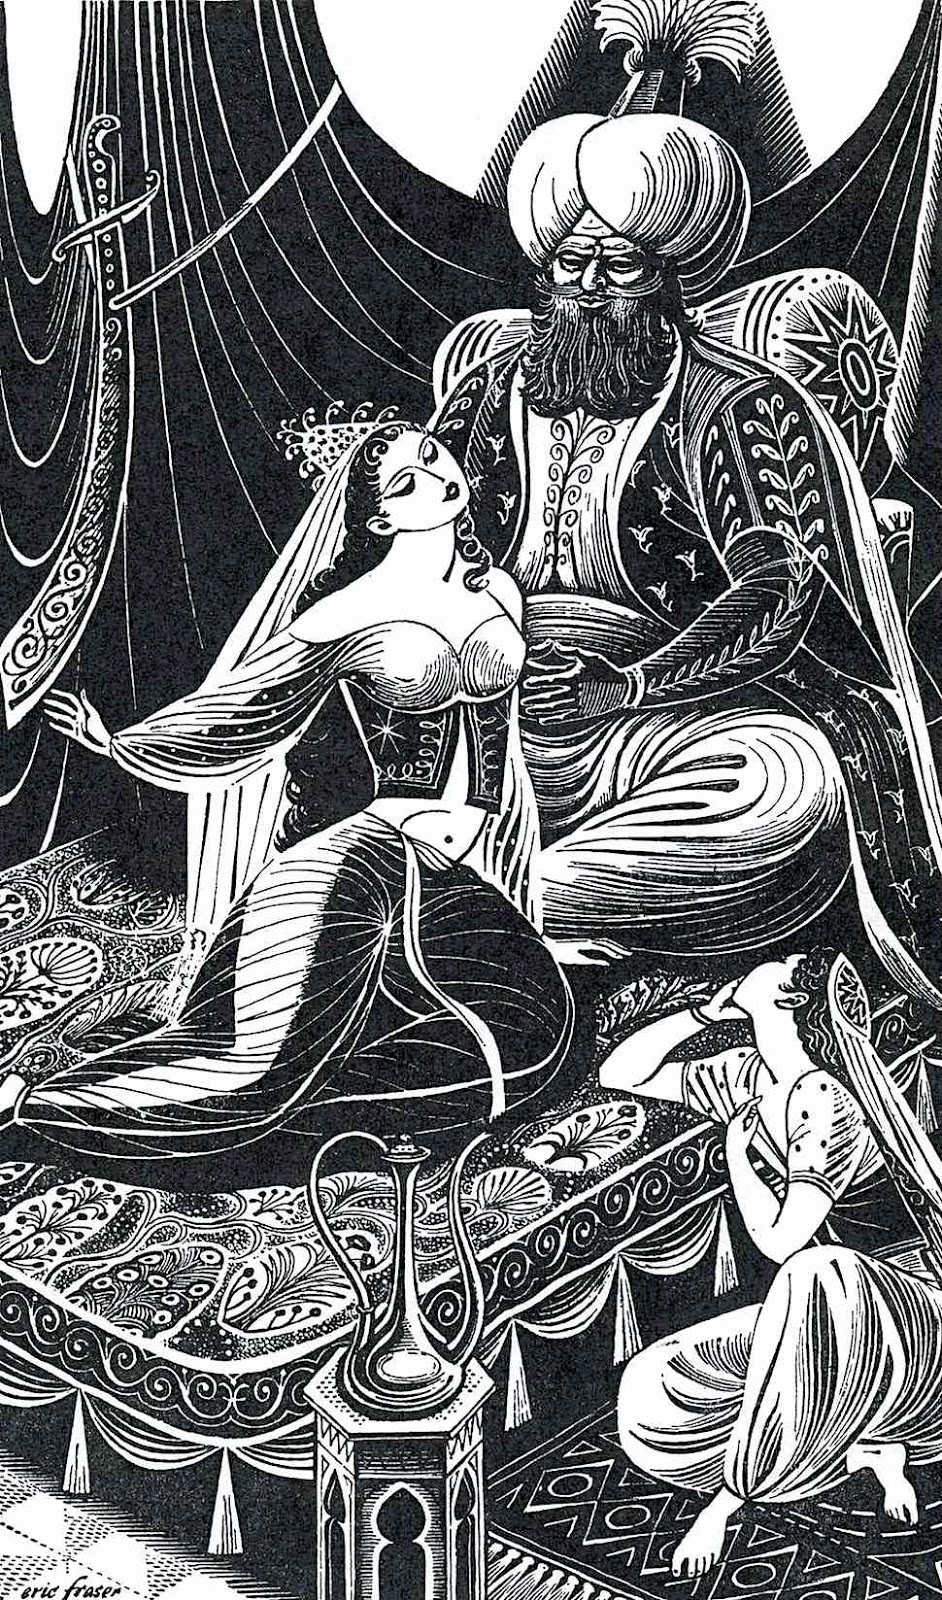 an Eric Fraser illustration of a sultan with harem